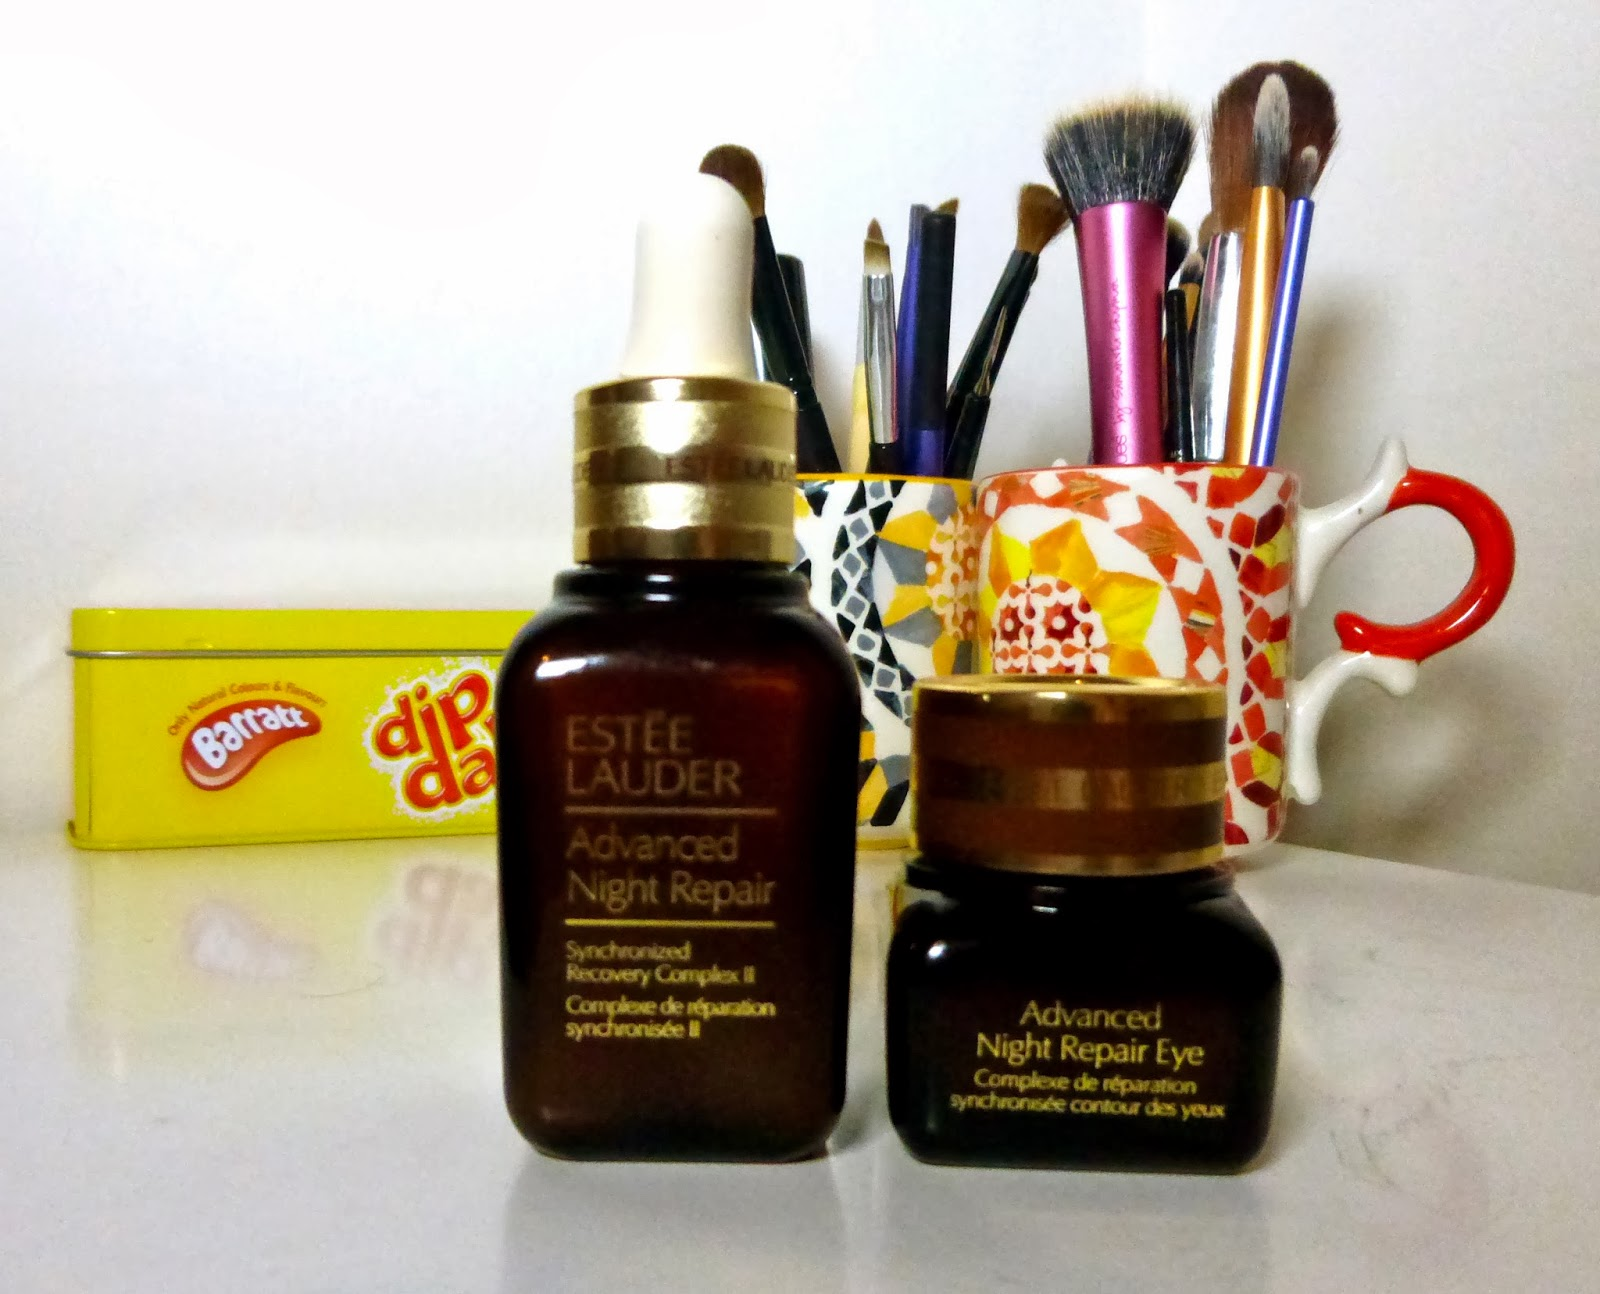 Estee Lauder ANR II and ANR Eye Recovery